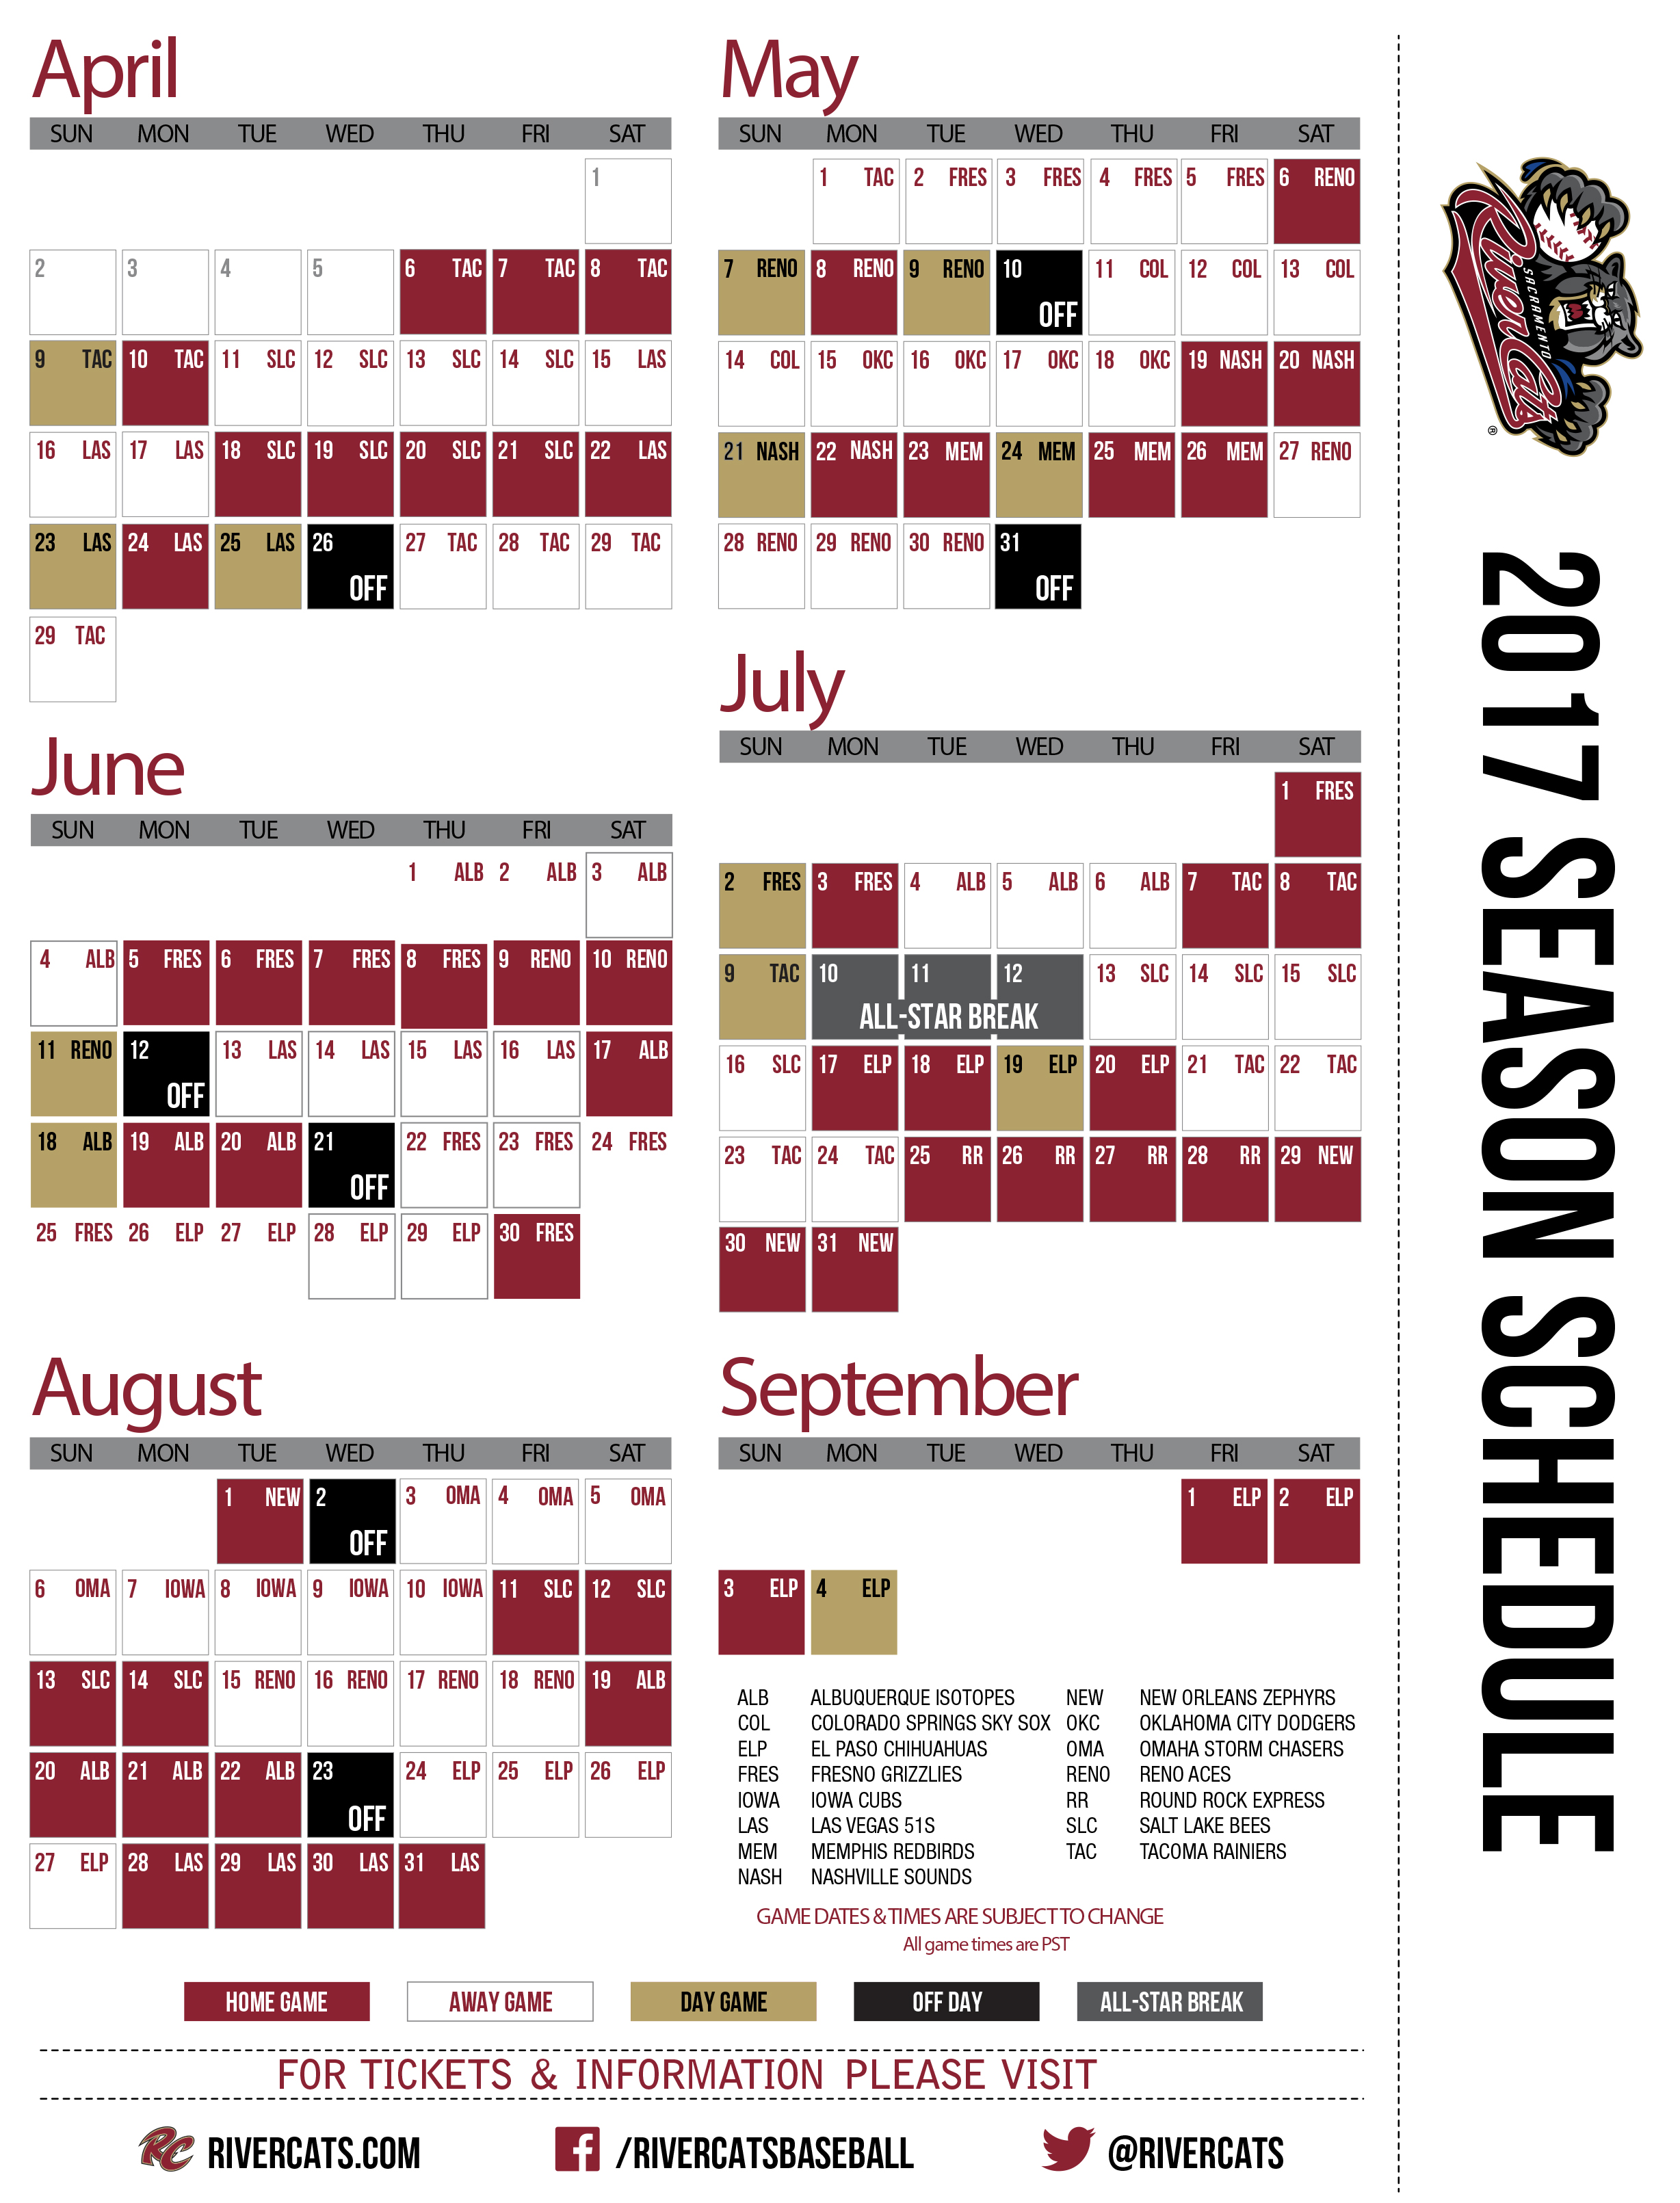 river cats unveil 2017 schedule | sacramento river cats news